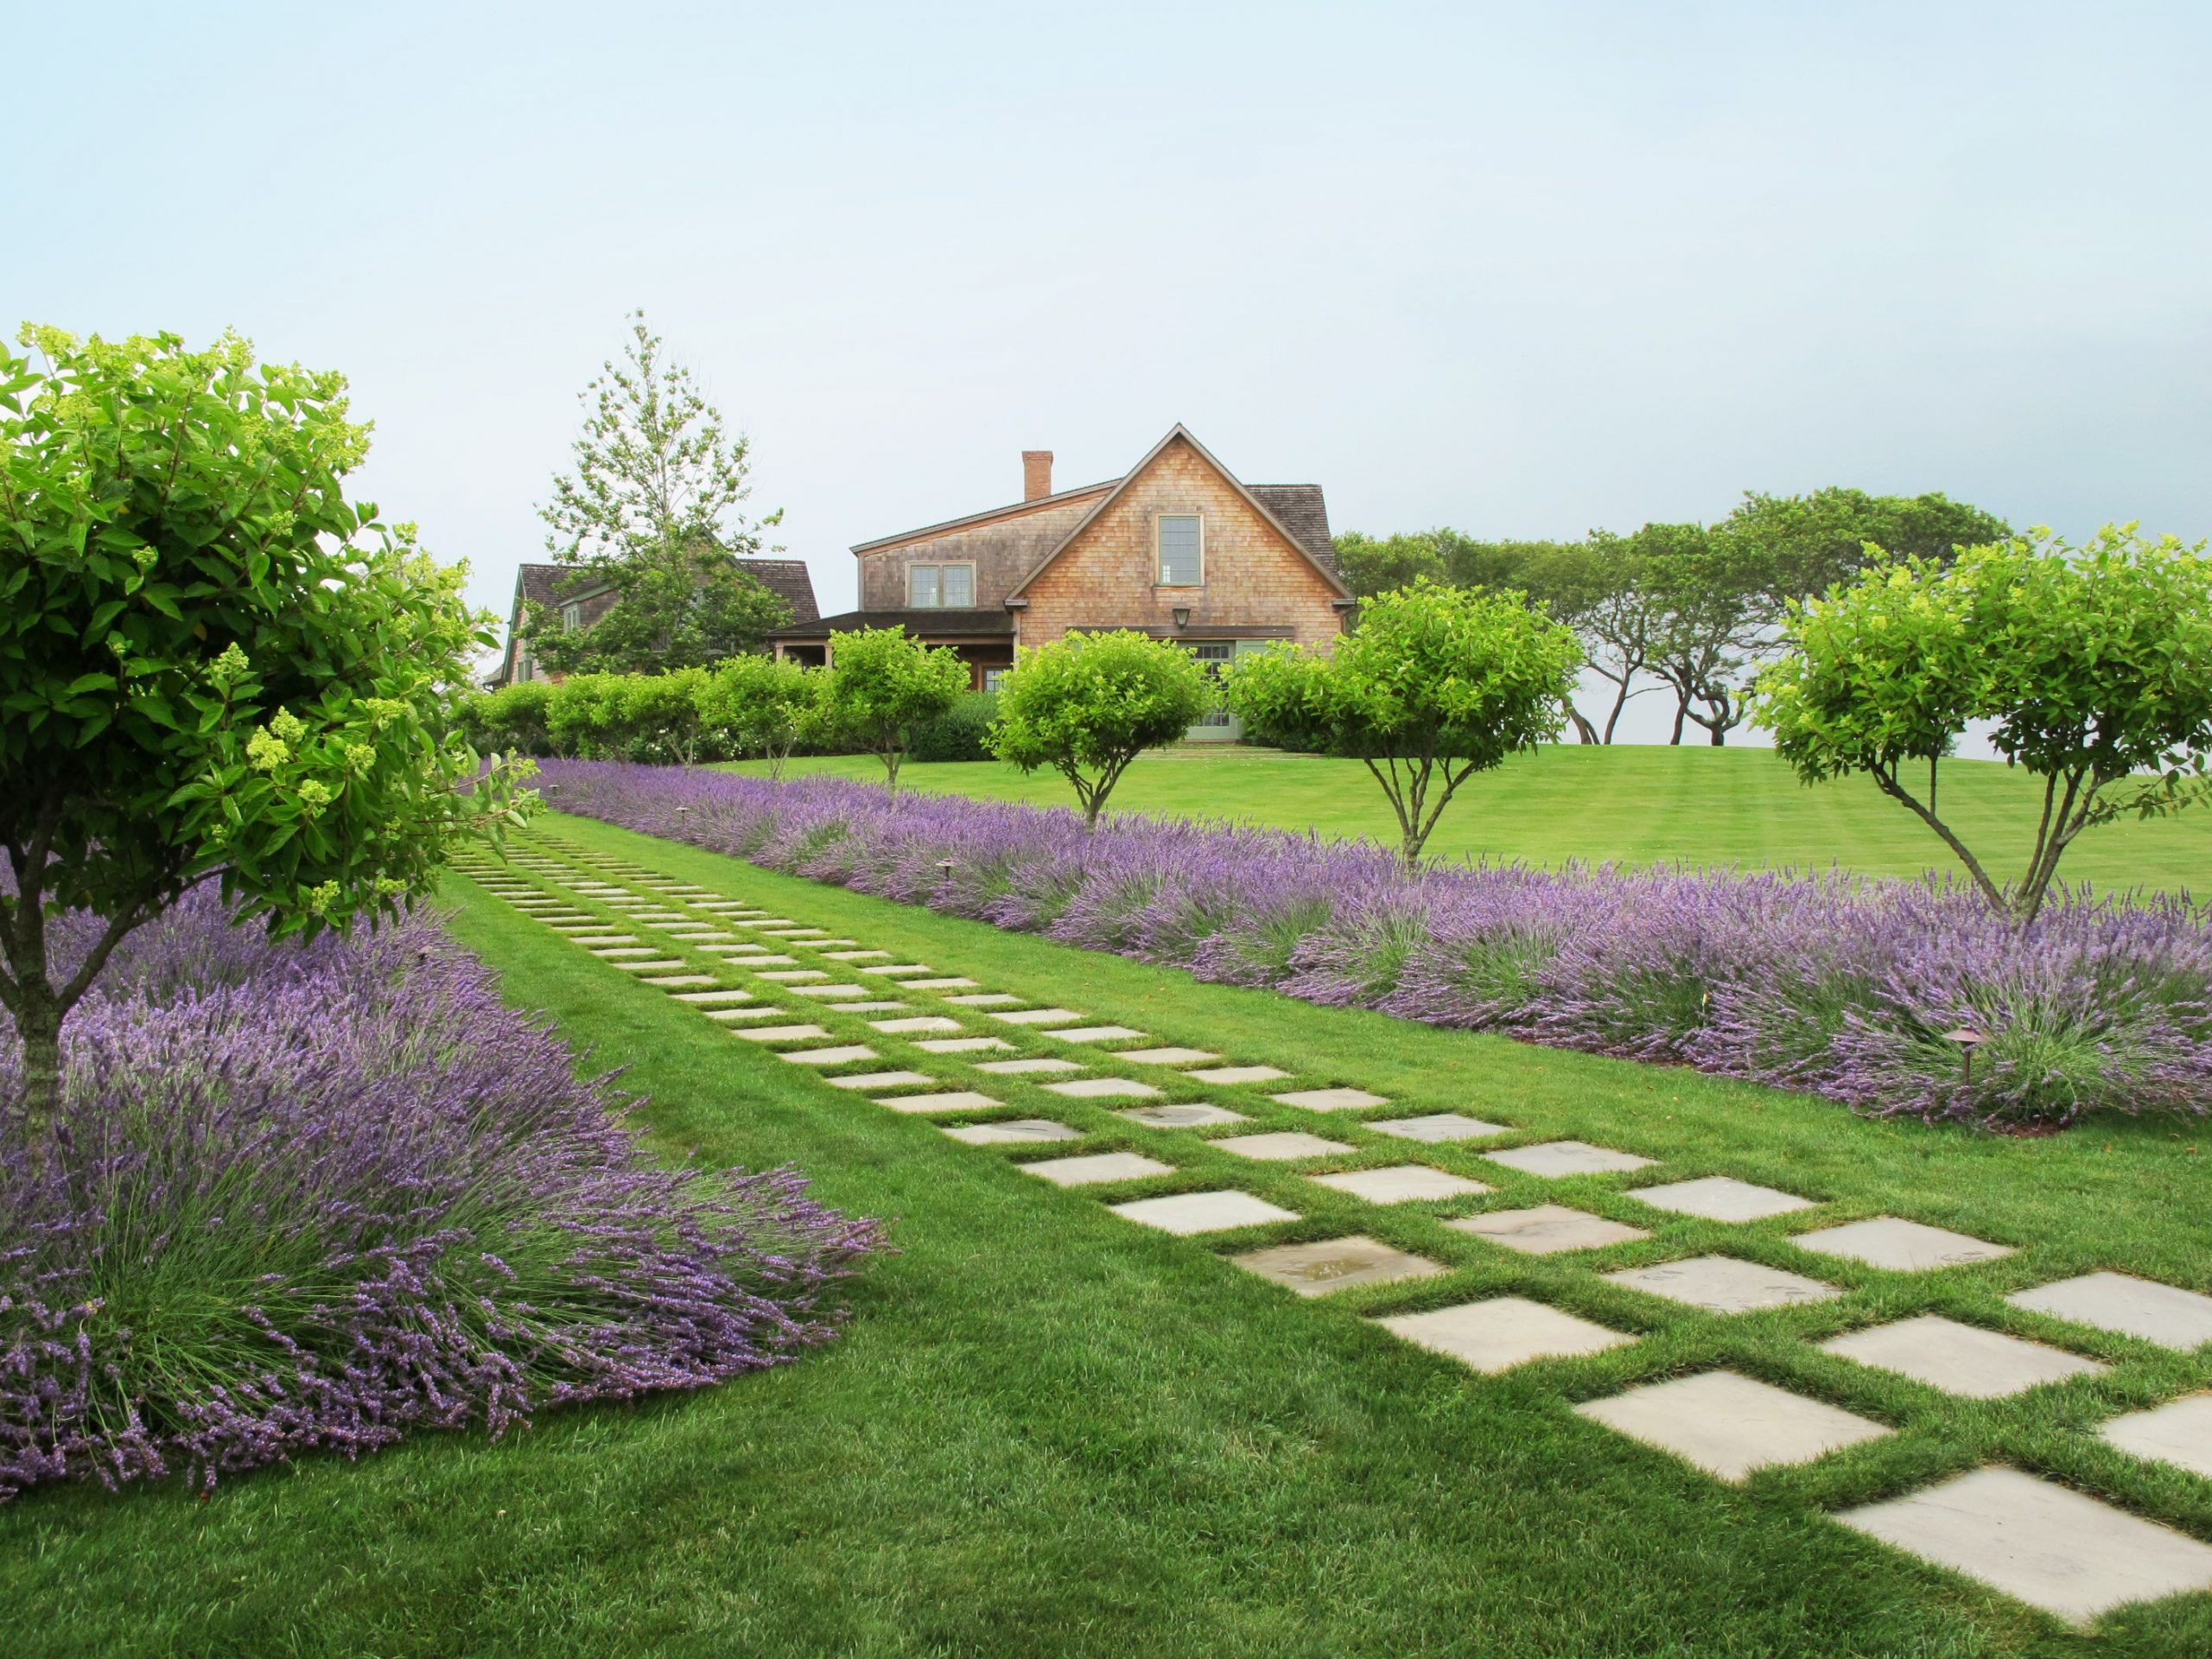 Landscaping Ideas and Inspiration